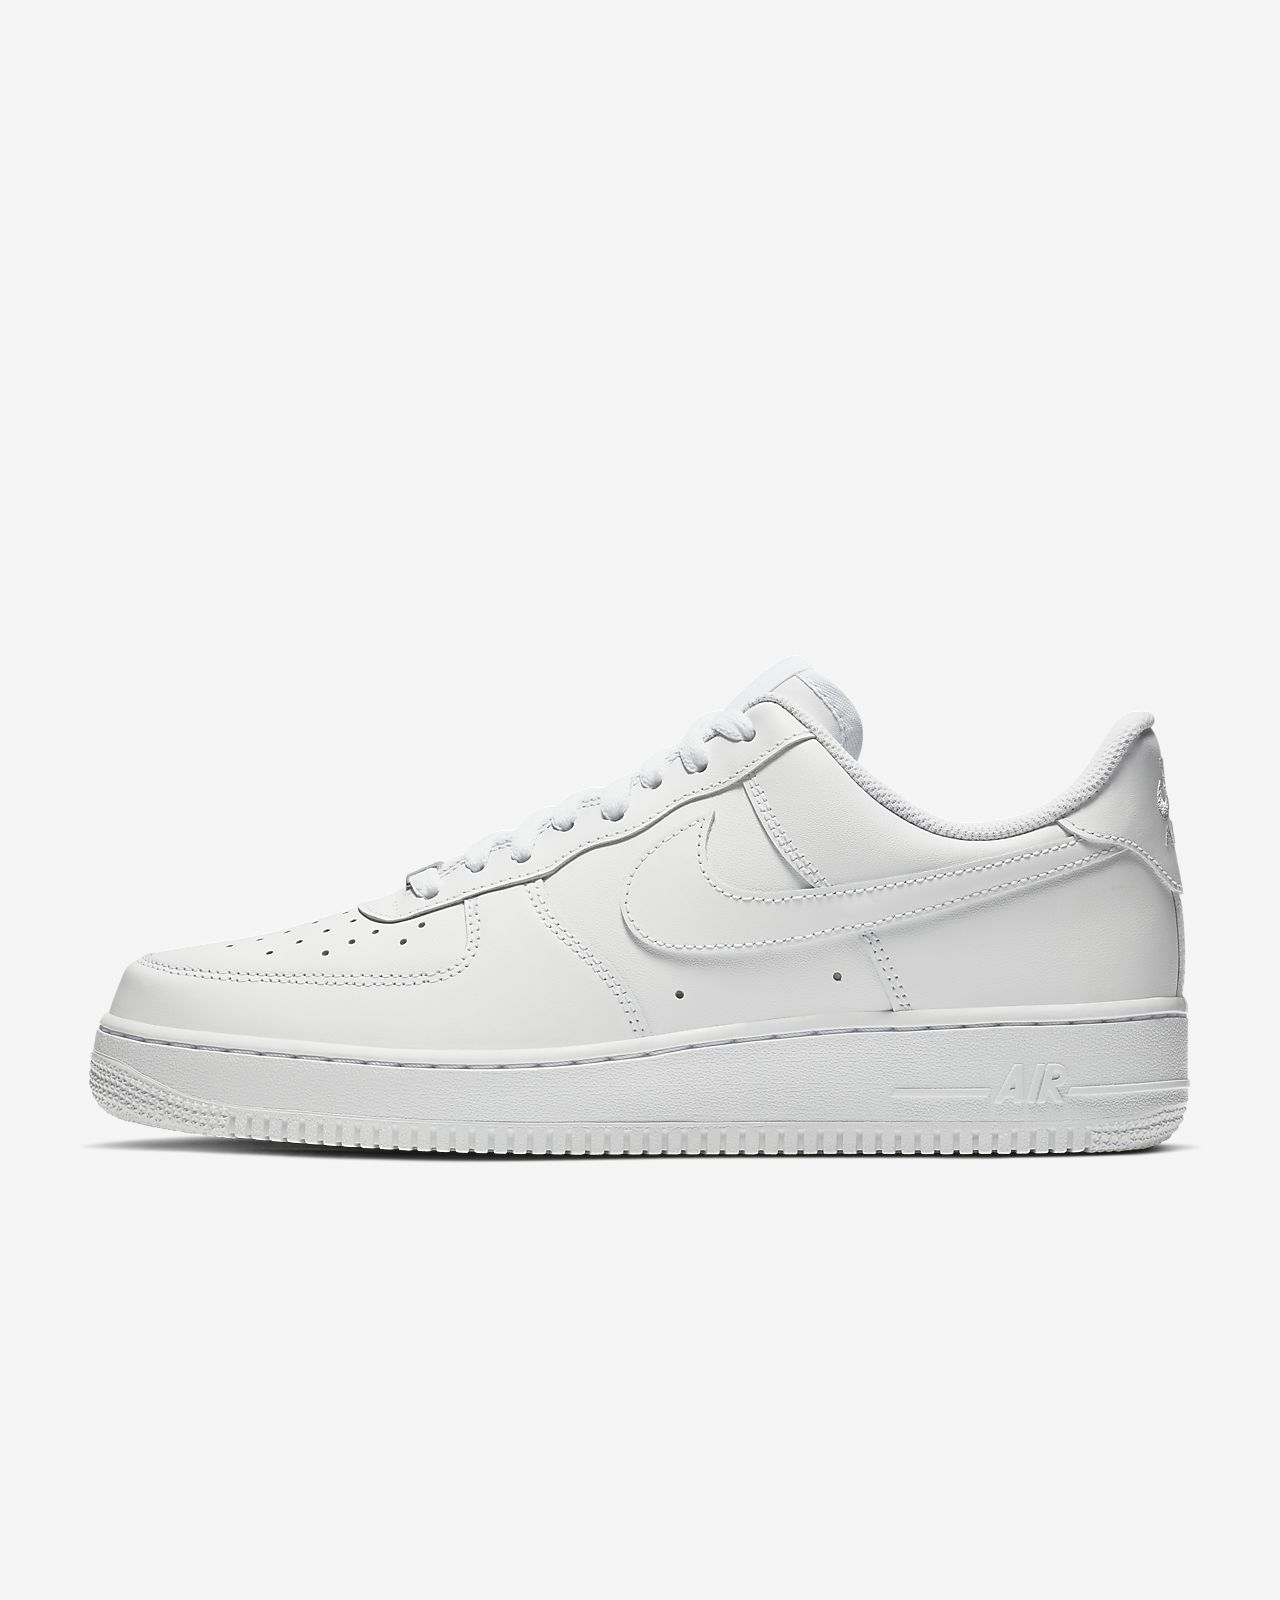 e5277ece26f3 Low Resolution Nike Air Force 1  07 Shoe Nike Air Force 1  07 Shoe